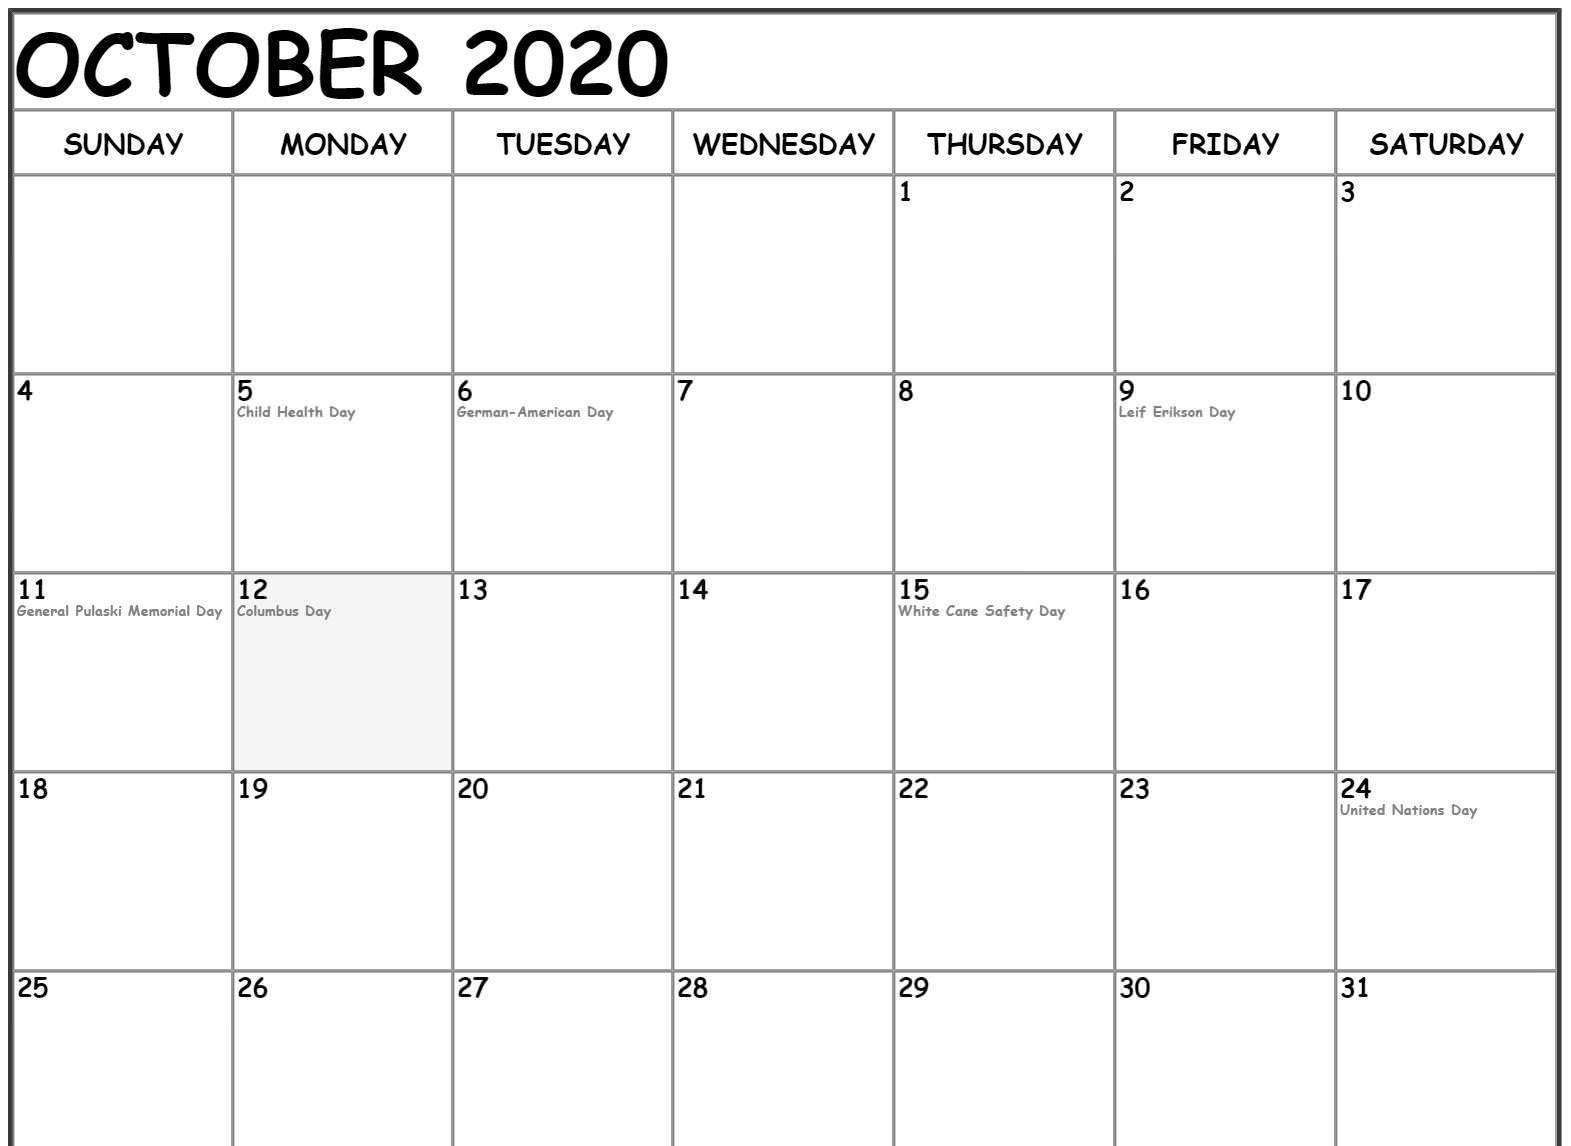 October 2020 Calendar US Holidays